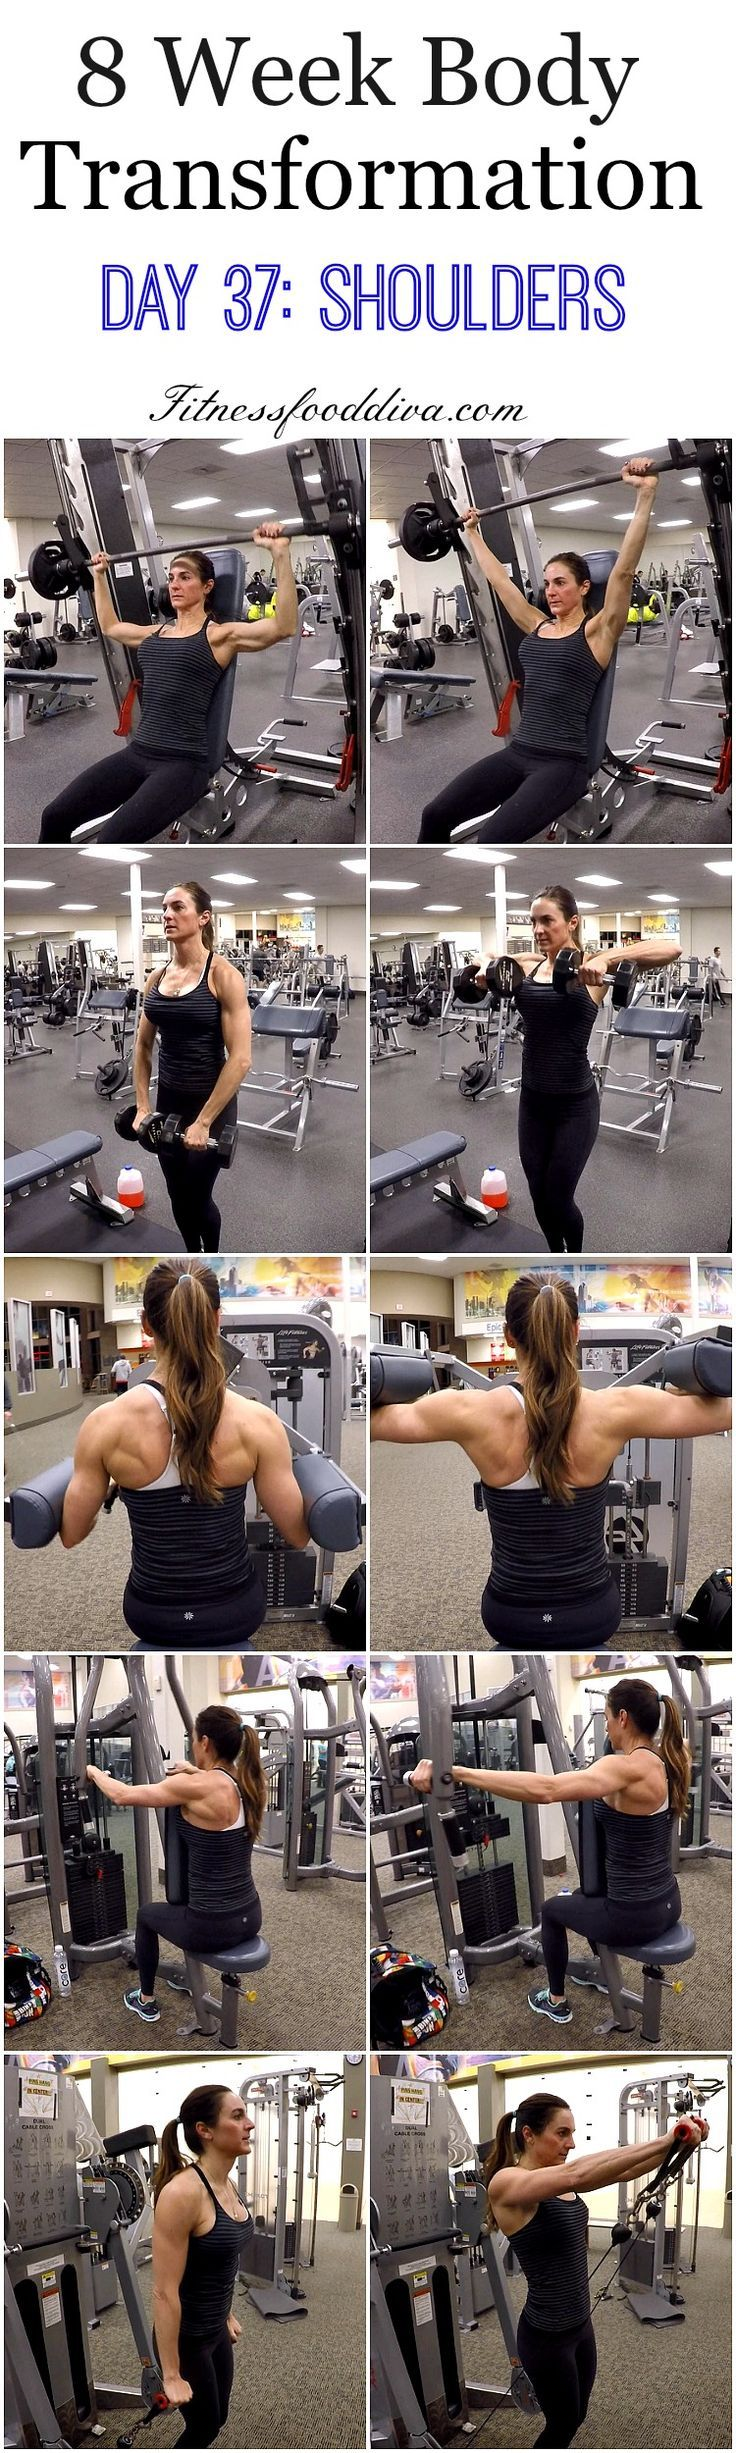 nice 8 Week Body Transformation: Day 37 Shoulders....